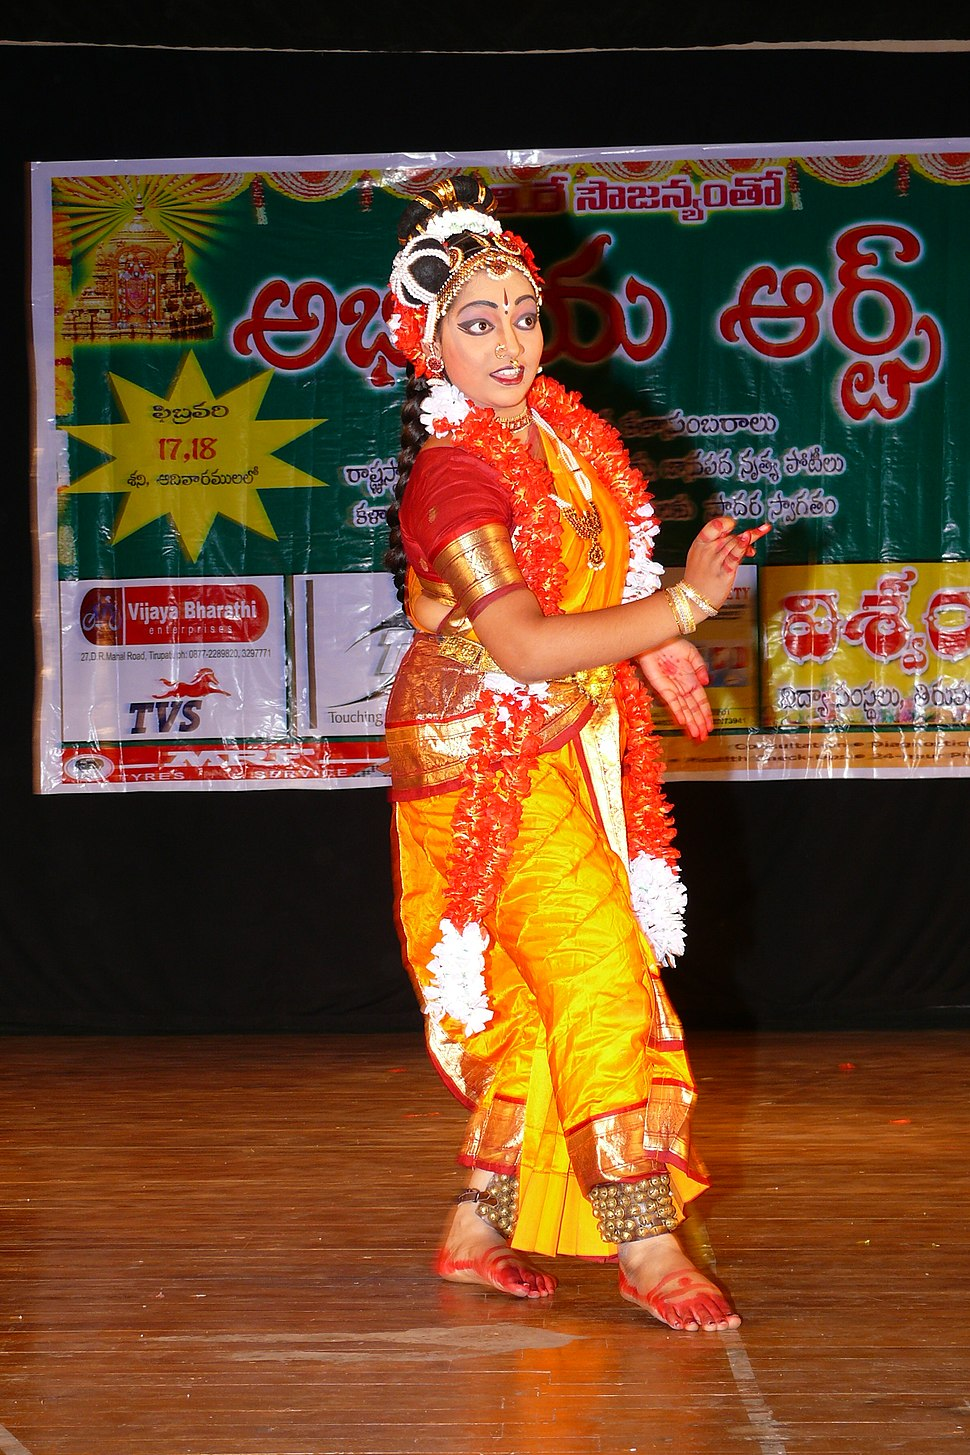 A Kuchipudi Dancer from Andhra Pradesh